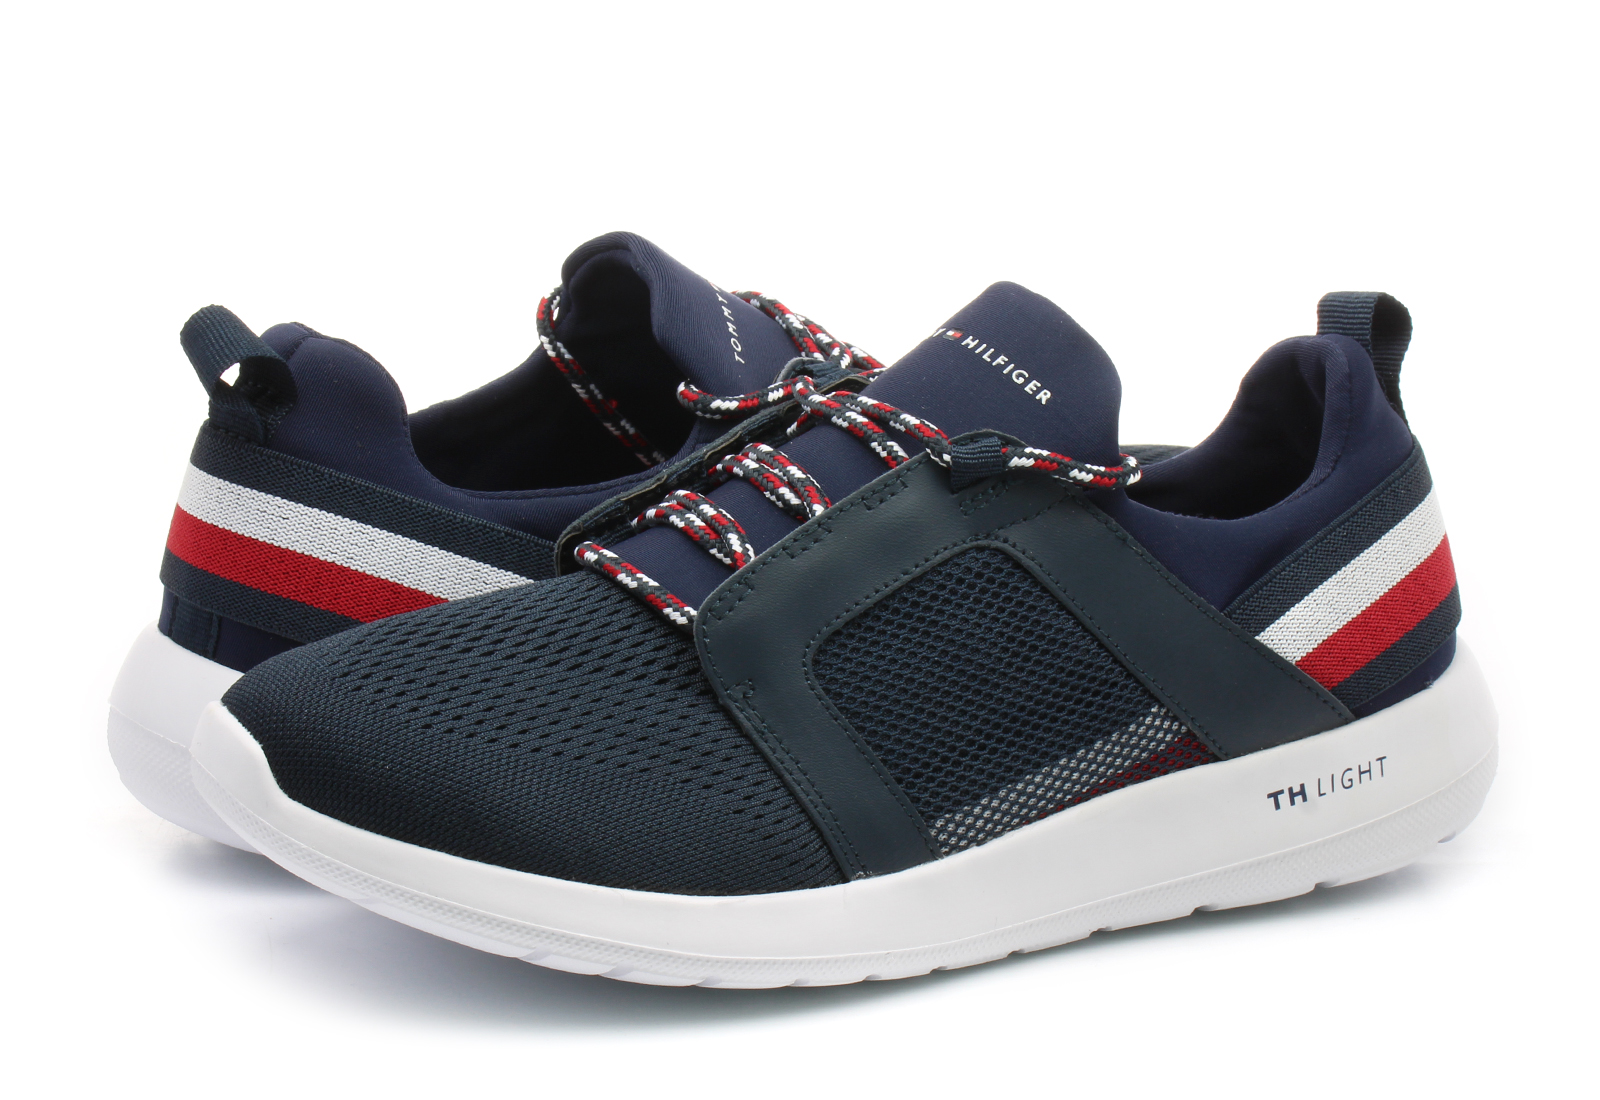 97b7e90fcaed Tommy Hilfiger Shoes - Taystee 6 - 18S-1345-403 - Online shop for ...